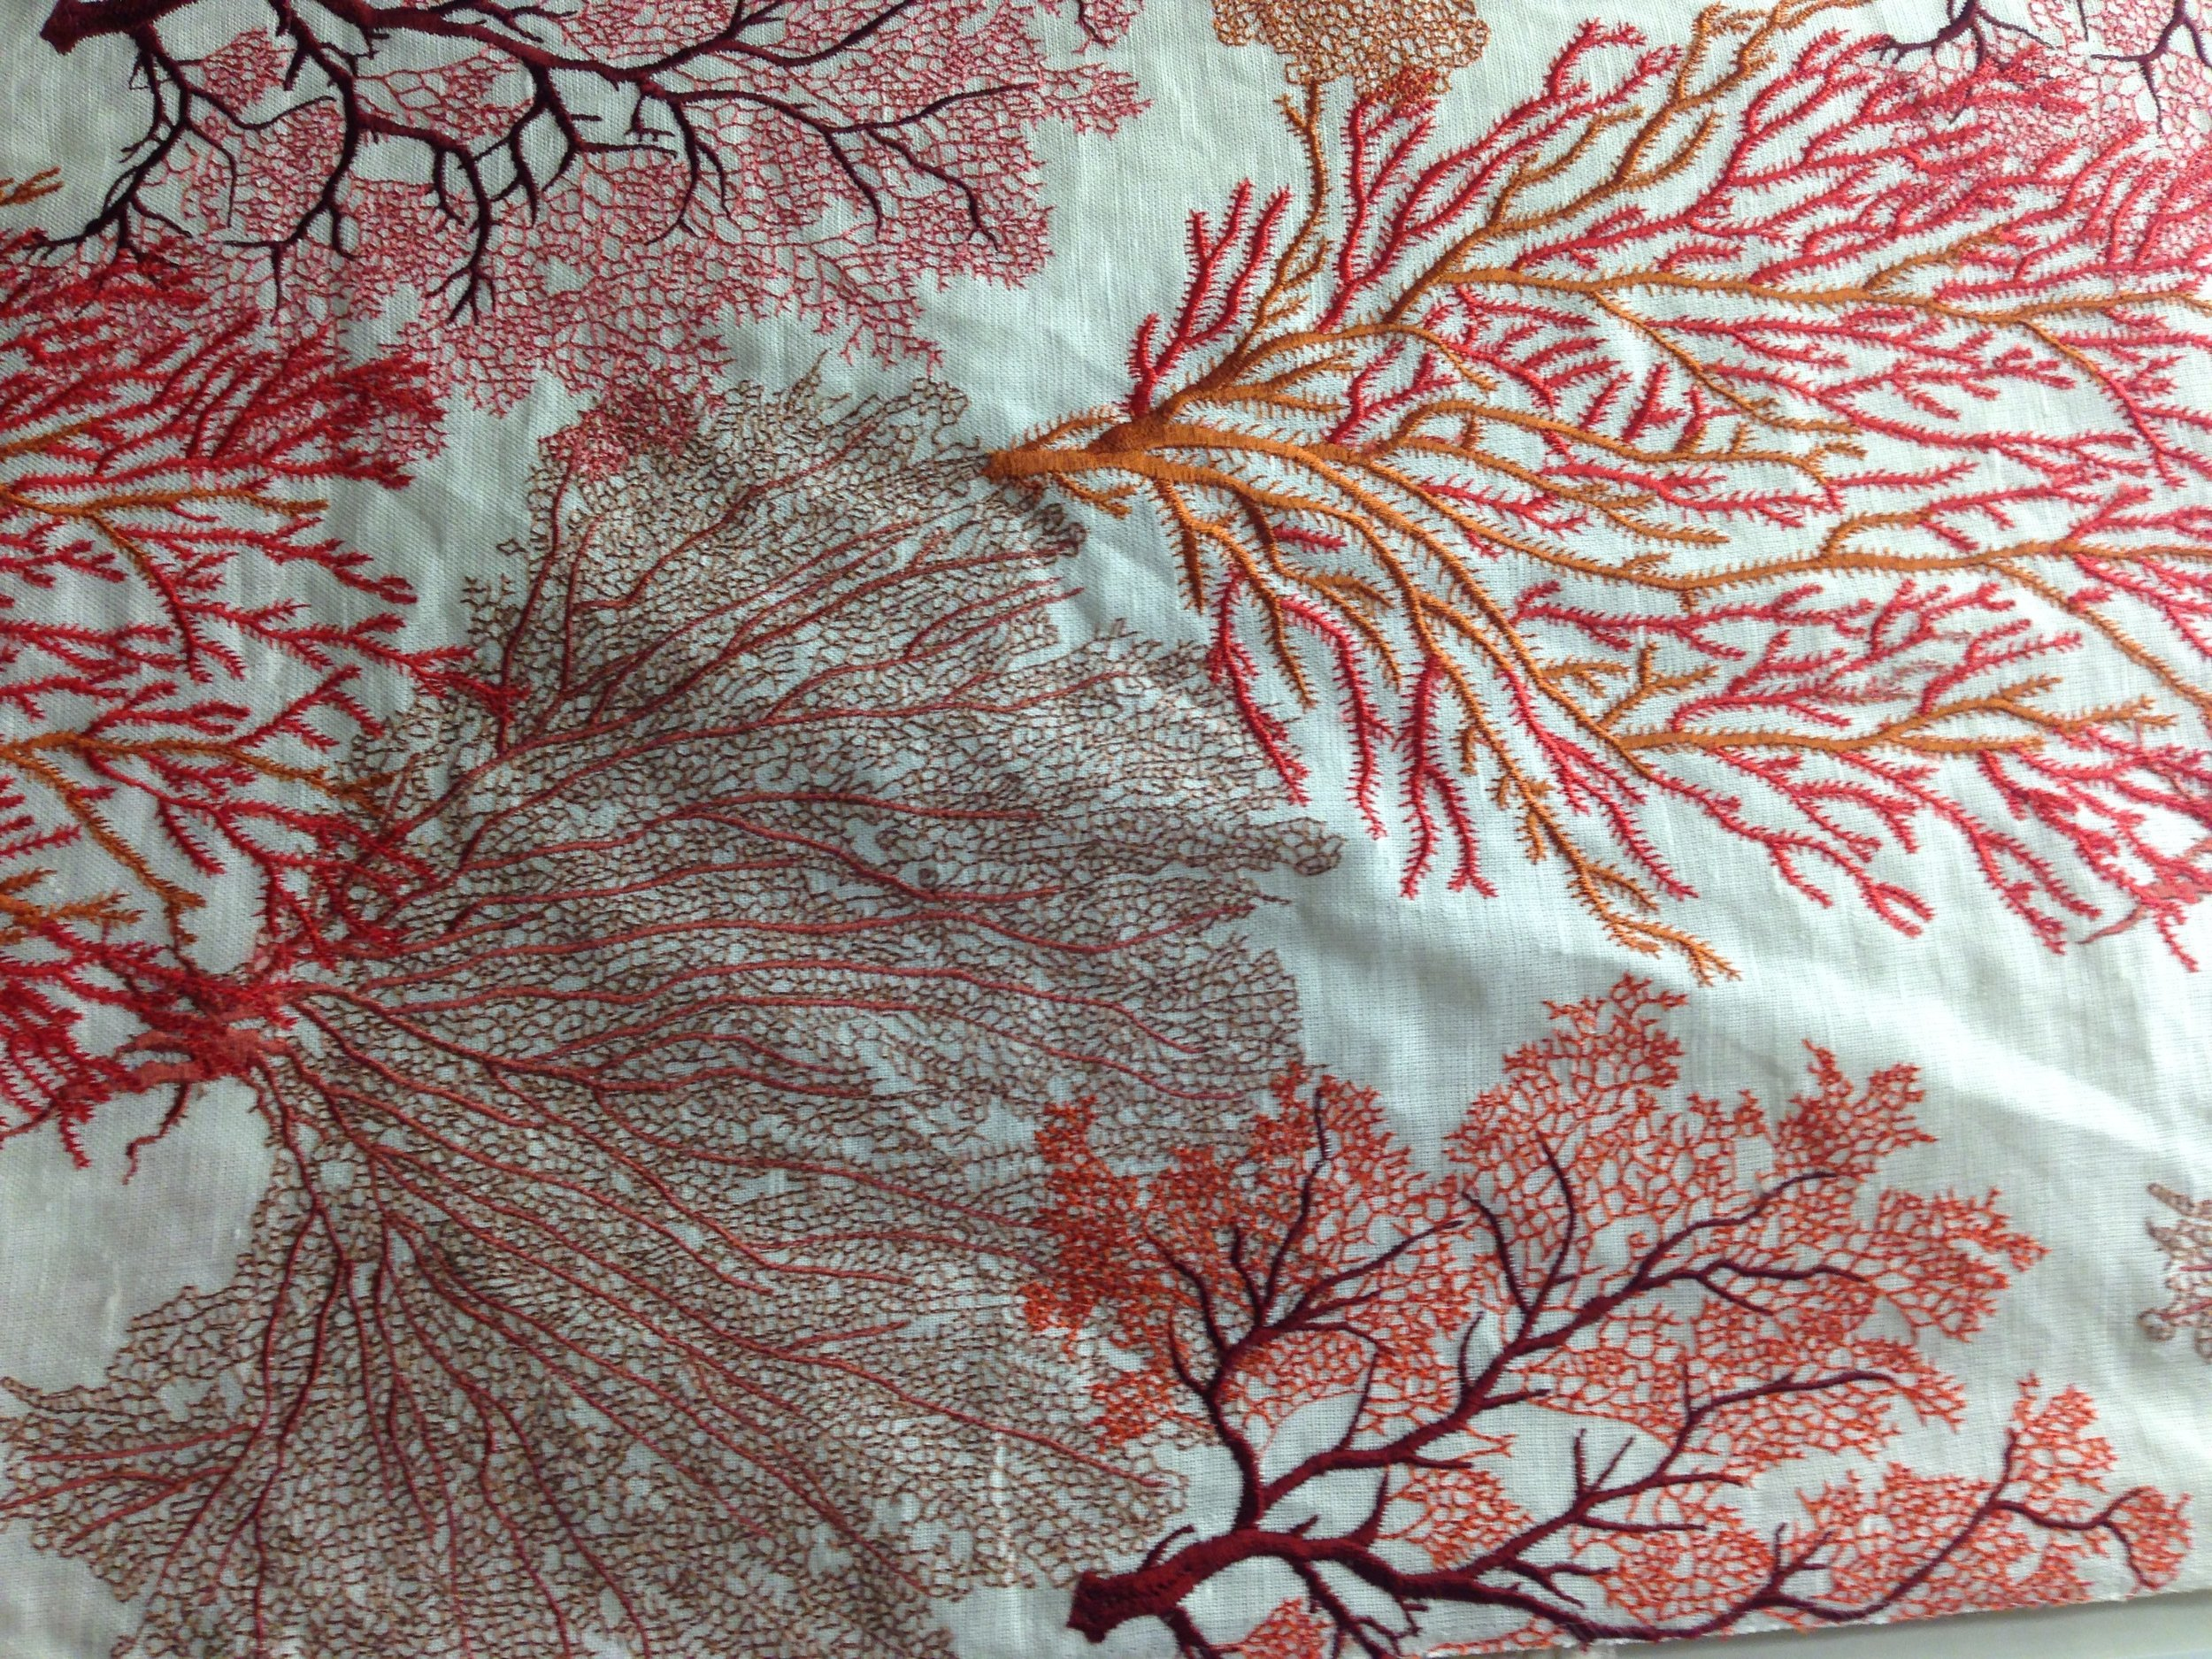 sea fans embroidered on linen